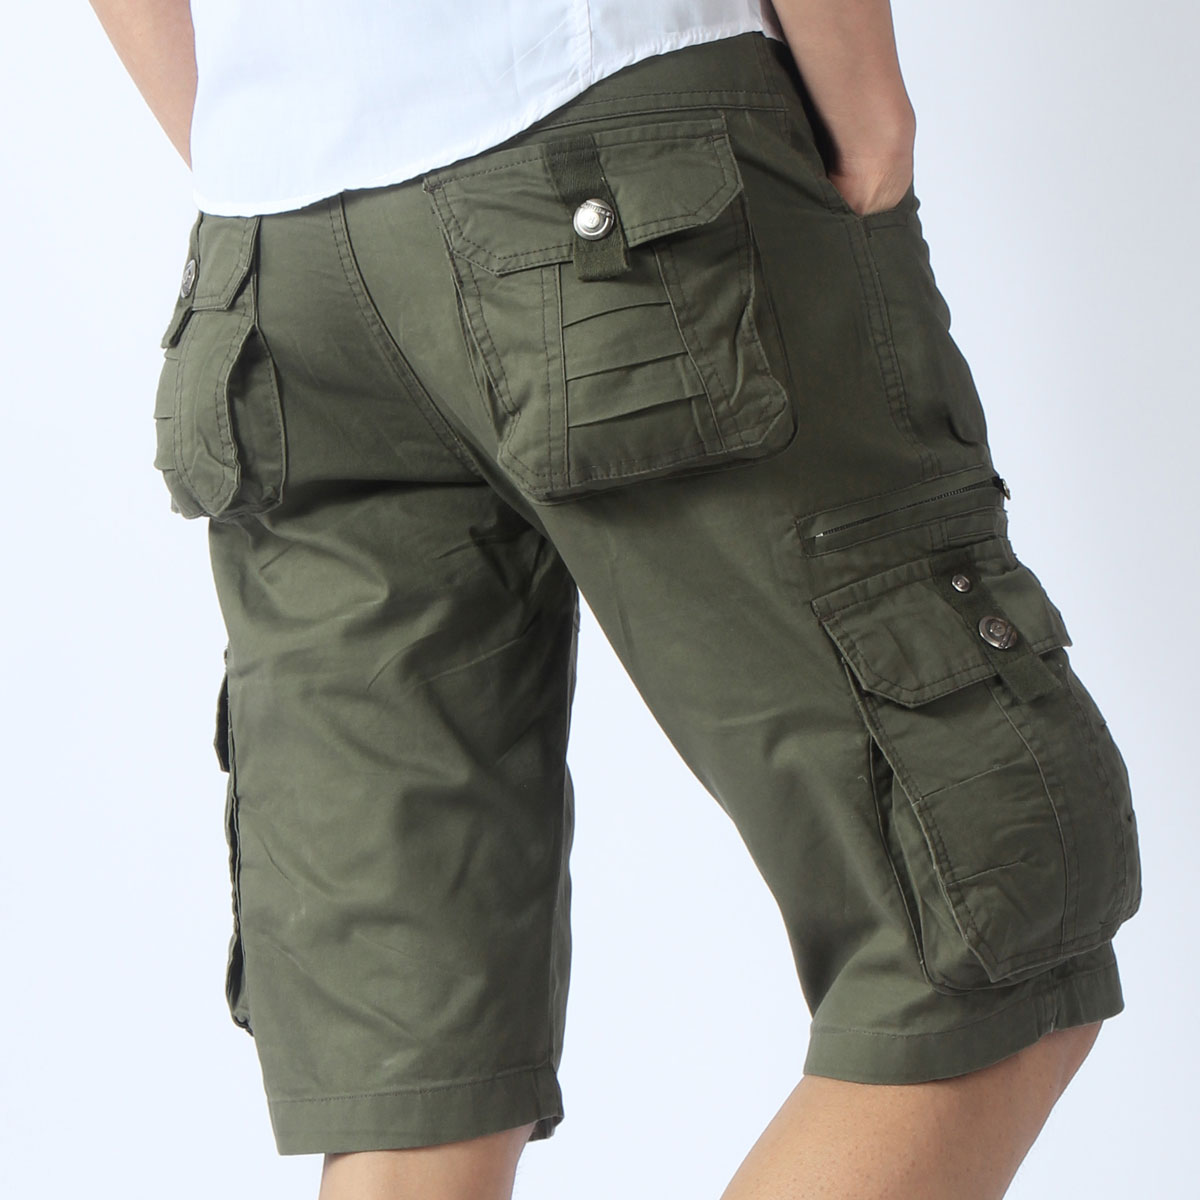 a645f0961 US $22.5 |Men's Army Green Military Shorts Combat Trousers with Pockets  Cool Tactical Cargo Shorts 6 Colors (Without Belt)-in Casual Shorts from  Men's ...